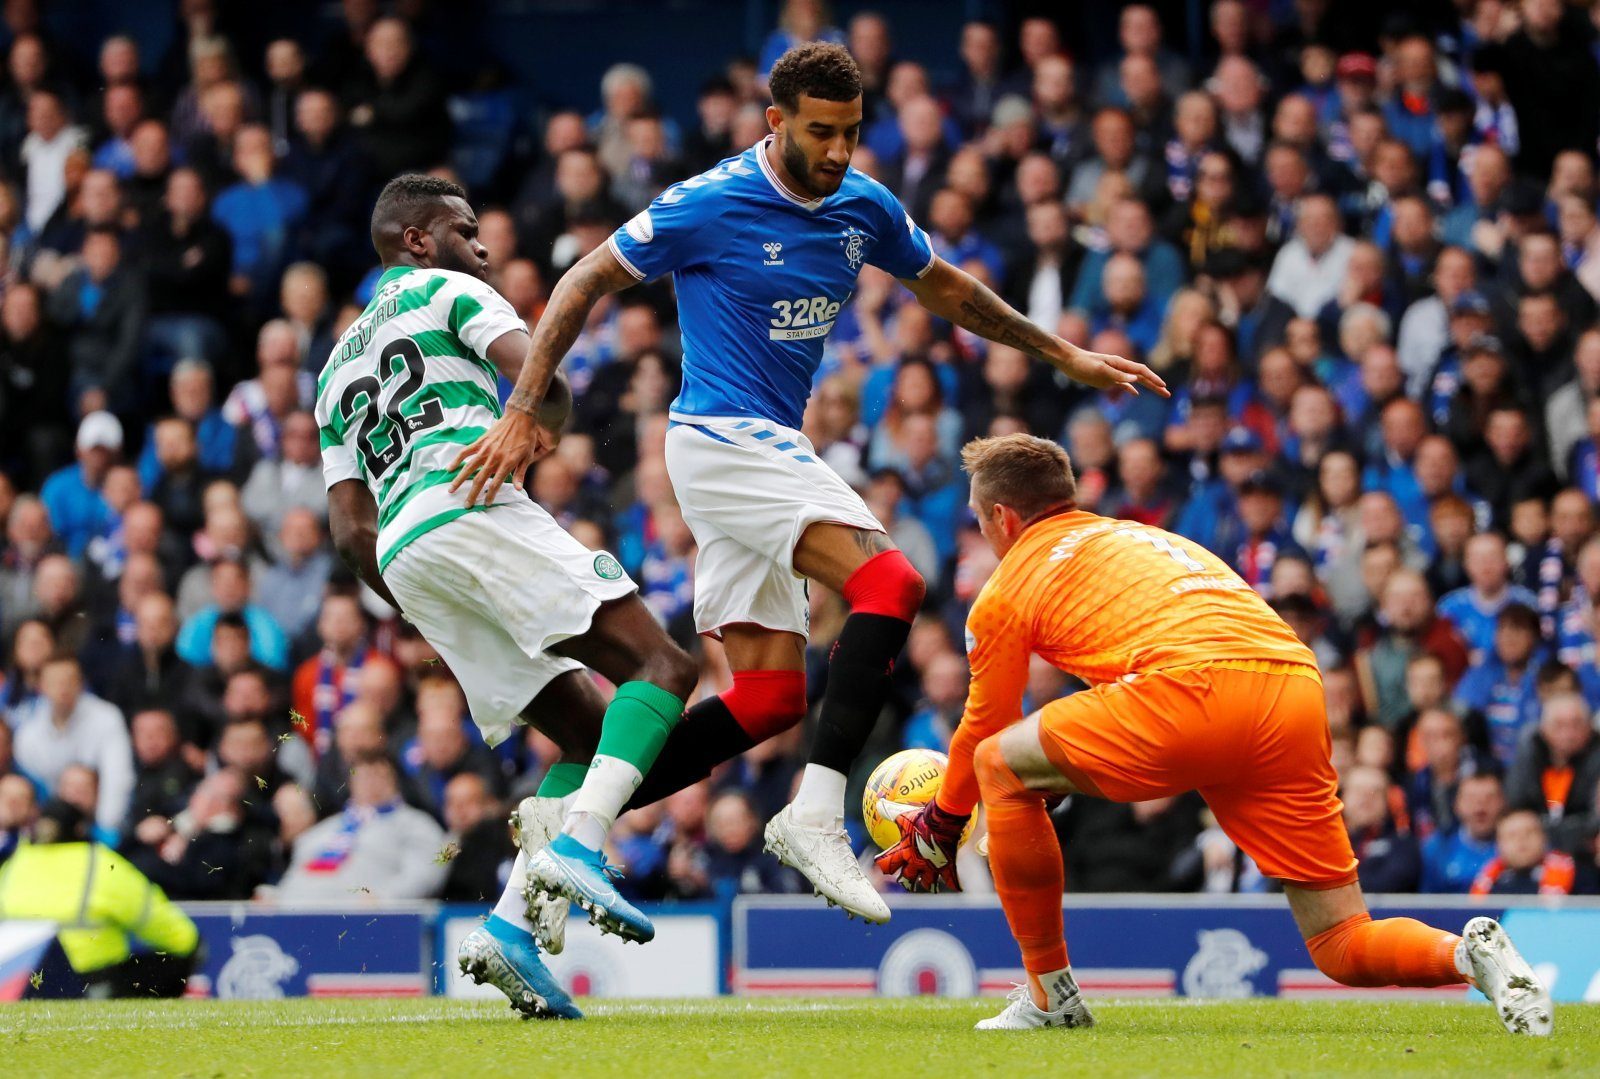 Rangers: Connor Goldson talks up BSC Young Boys' main threat ahead of Europa League meeting